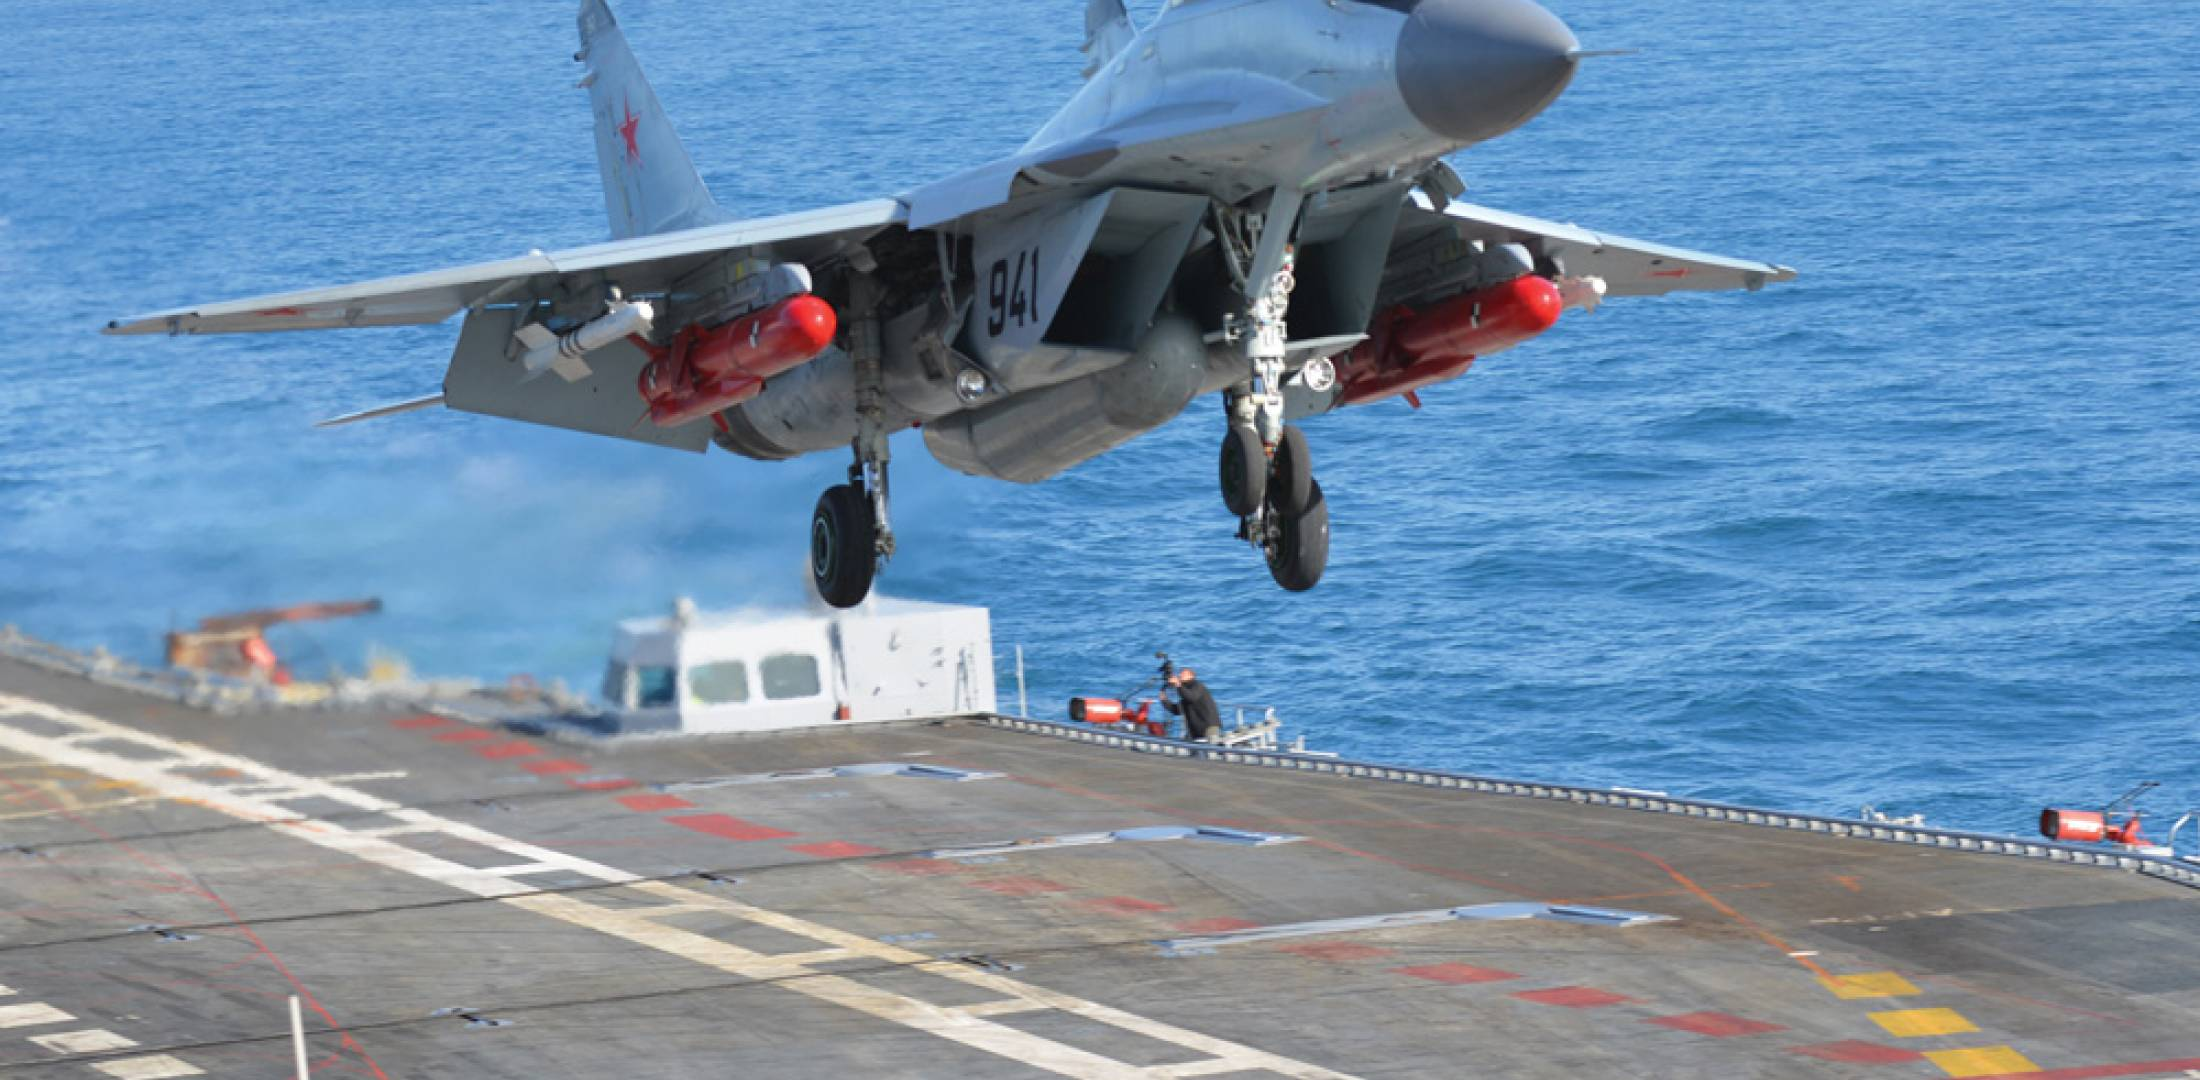 Having completed flight trials from the ship's deck, Russia's MiG now turns its attention to training Indian pilots in ship-borne ops